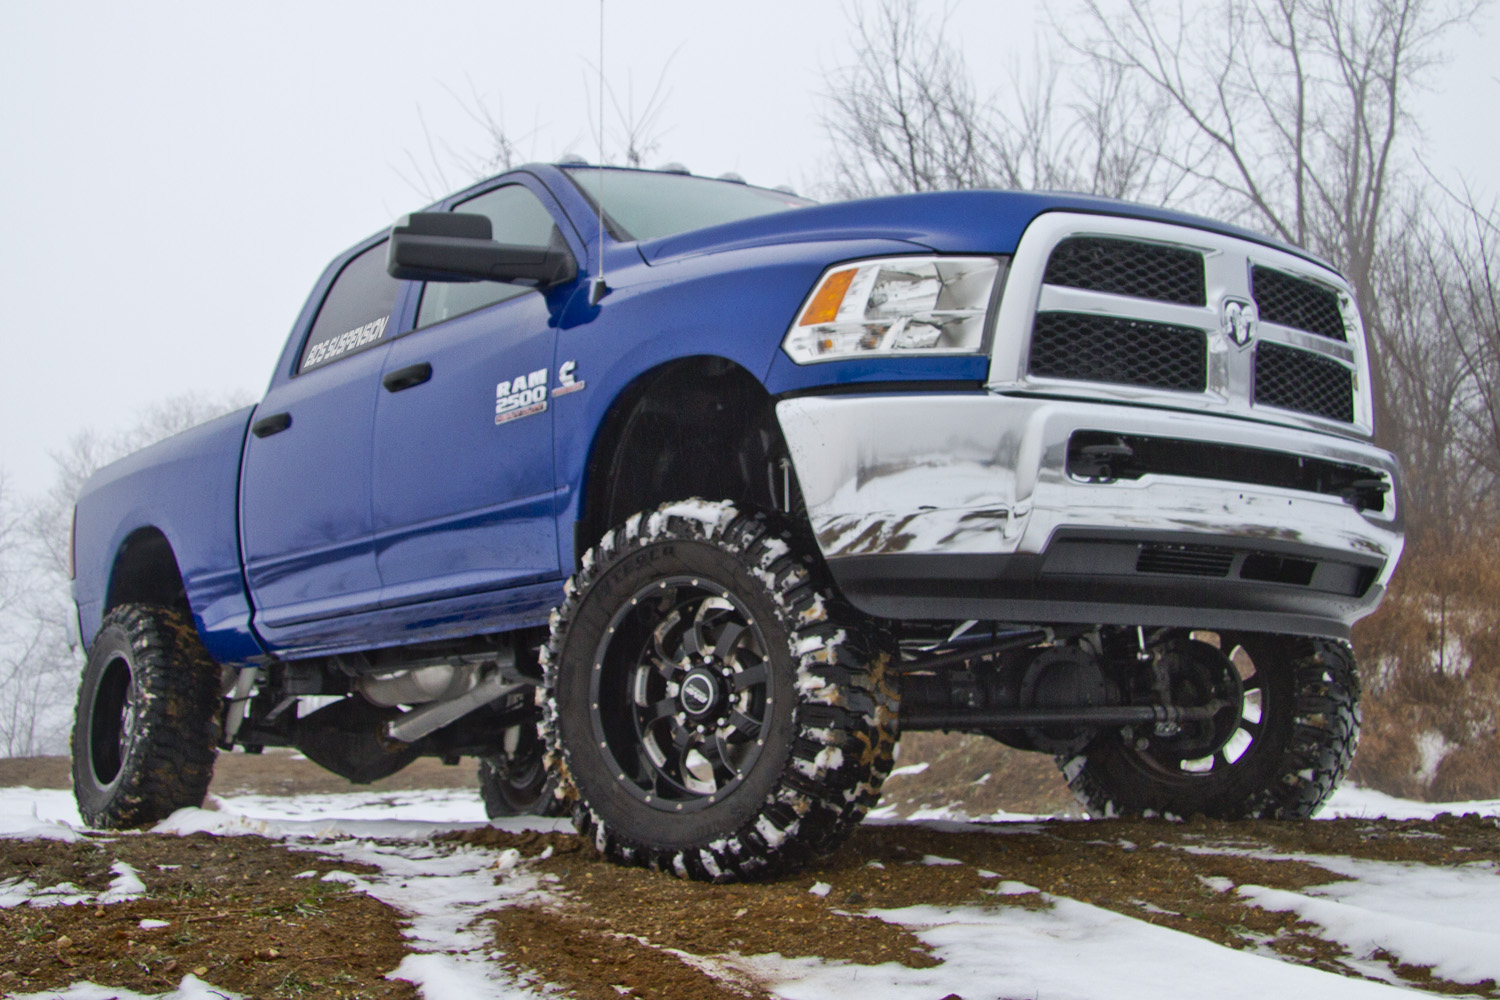 hires image dodge_2500_14b_6injpg - Dodge Ram 2014 Lifted